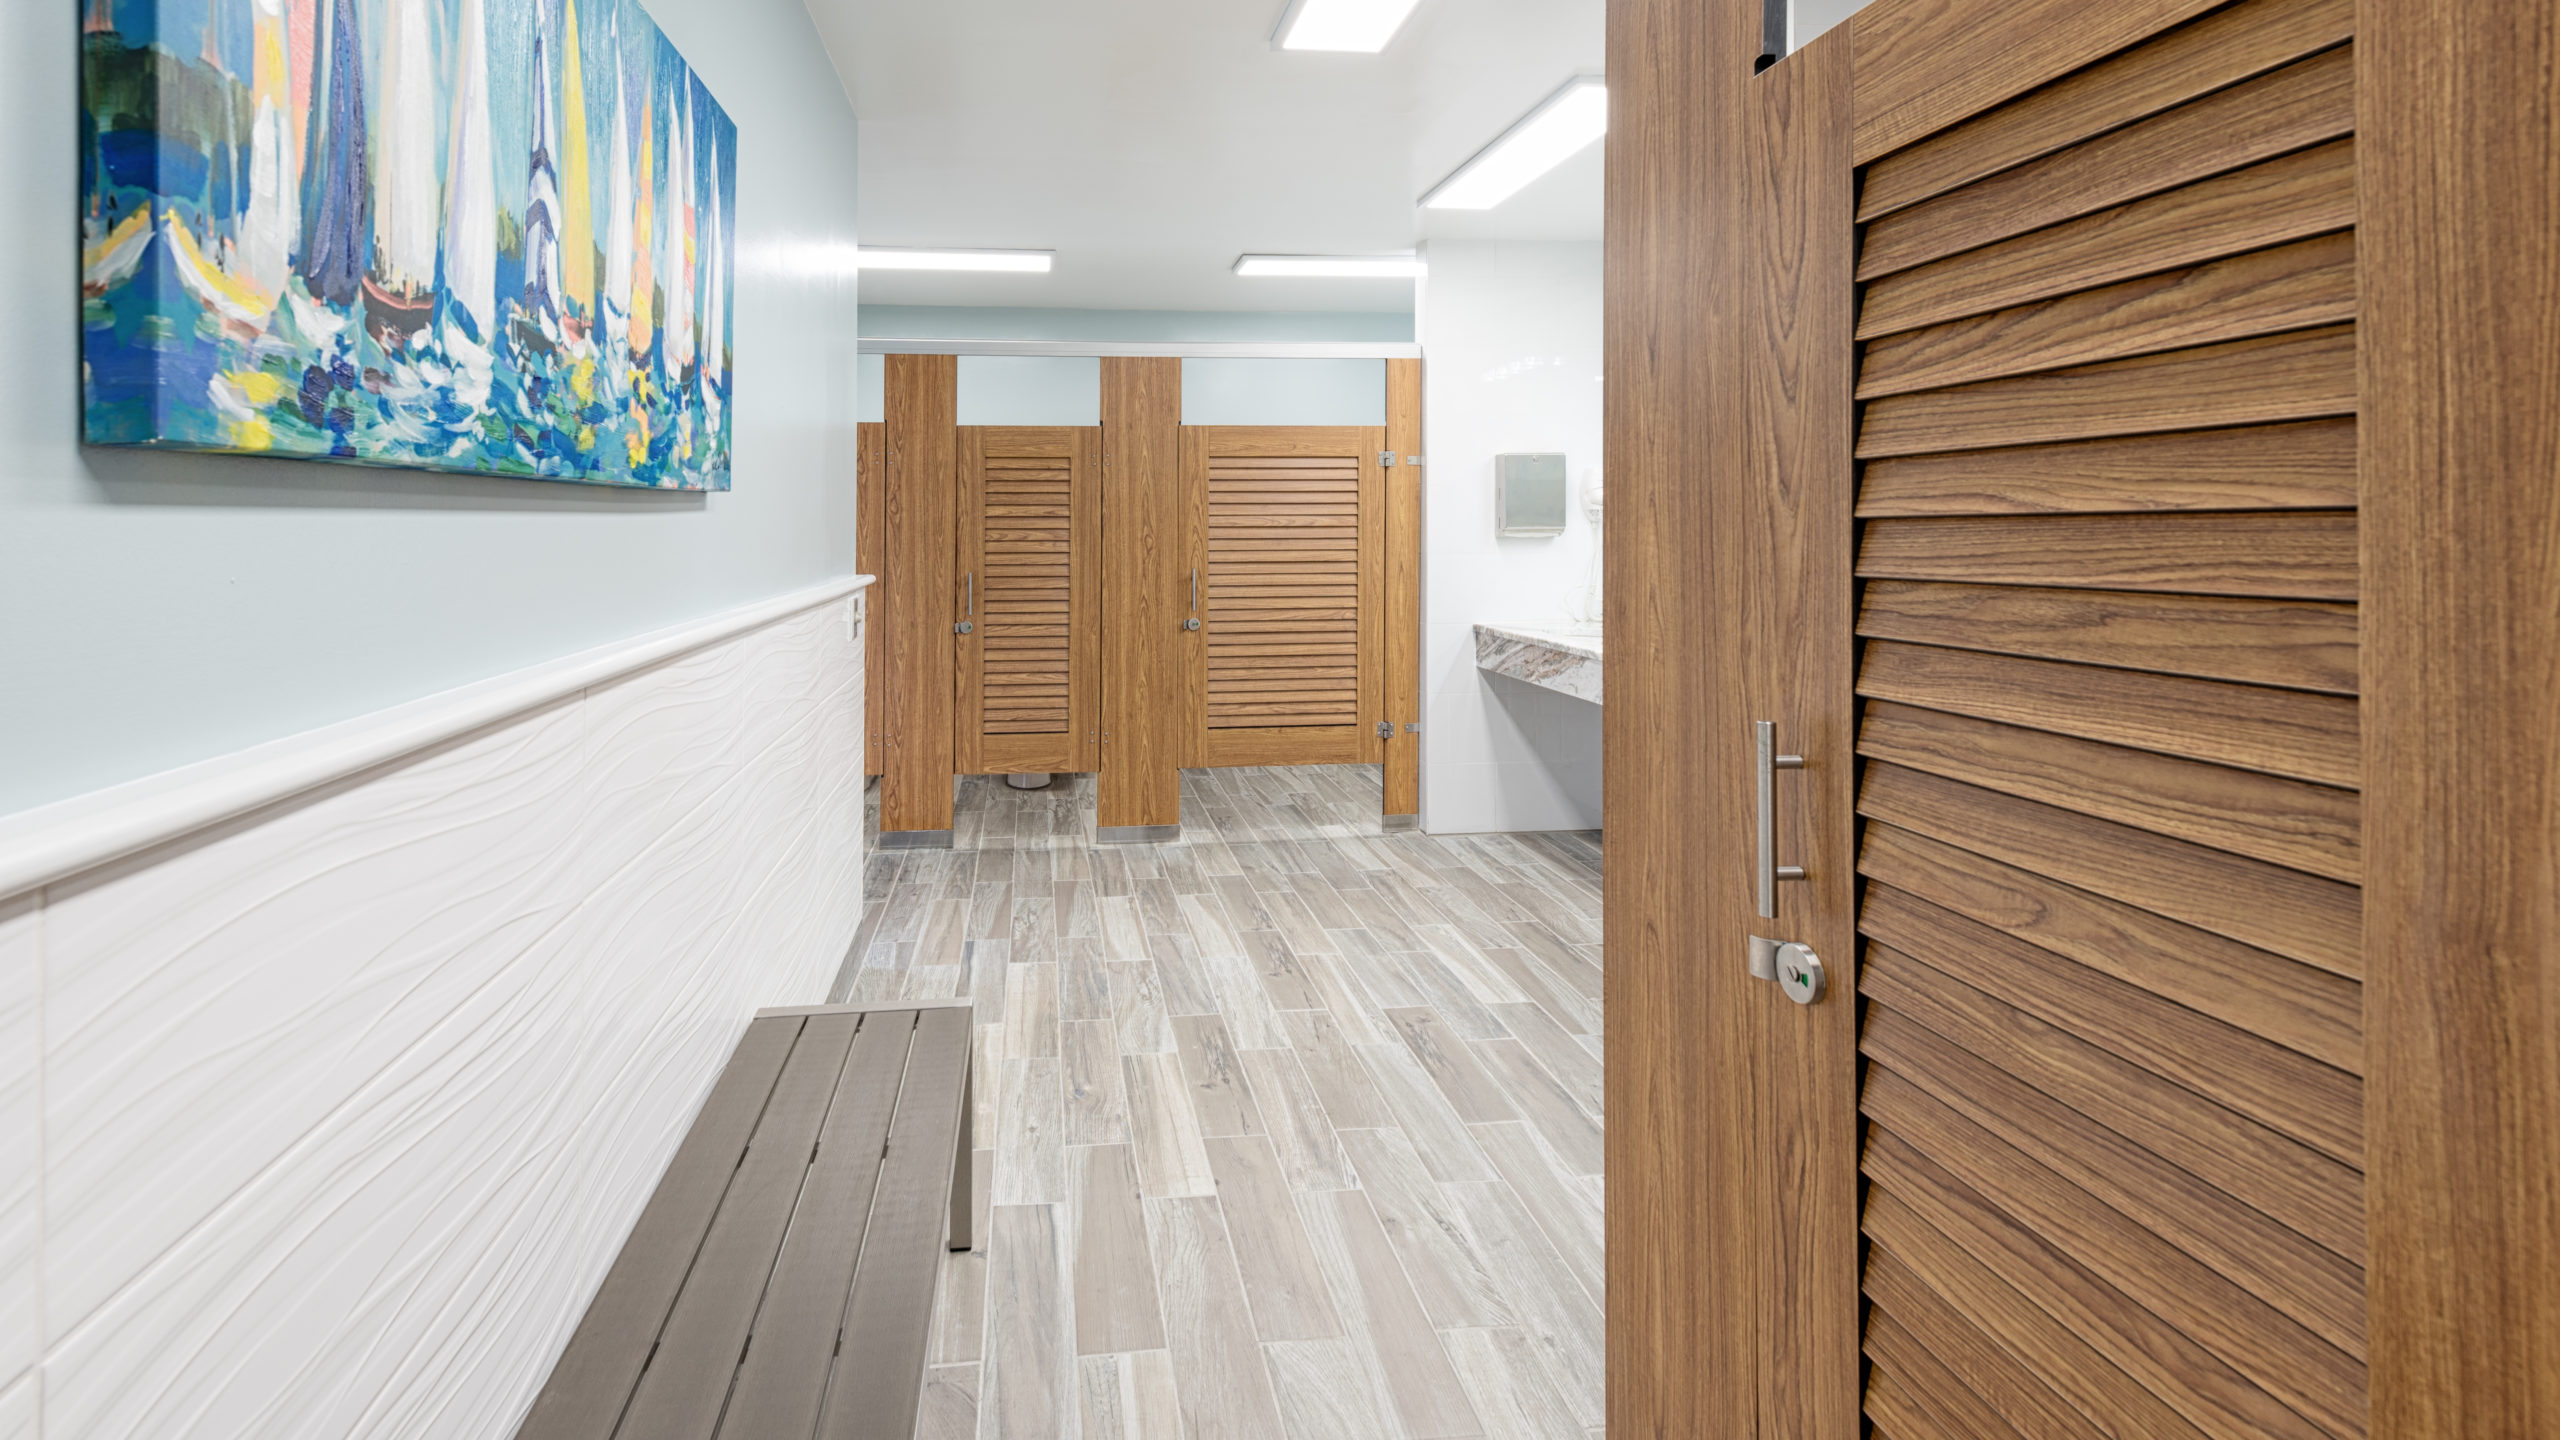 Marina bathroom features compact laminate, wood grain louver doors in headrail braced style. Sailboat print on wall above grey metal changing bench.